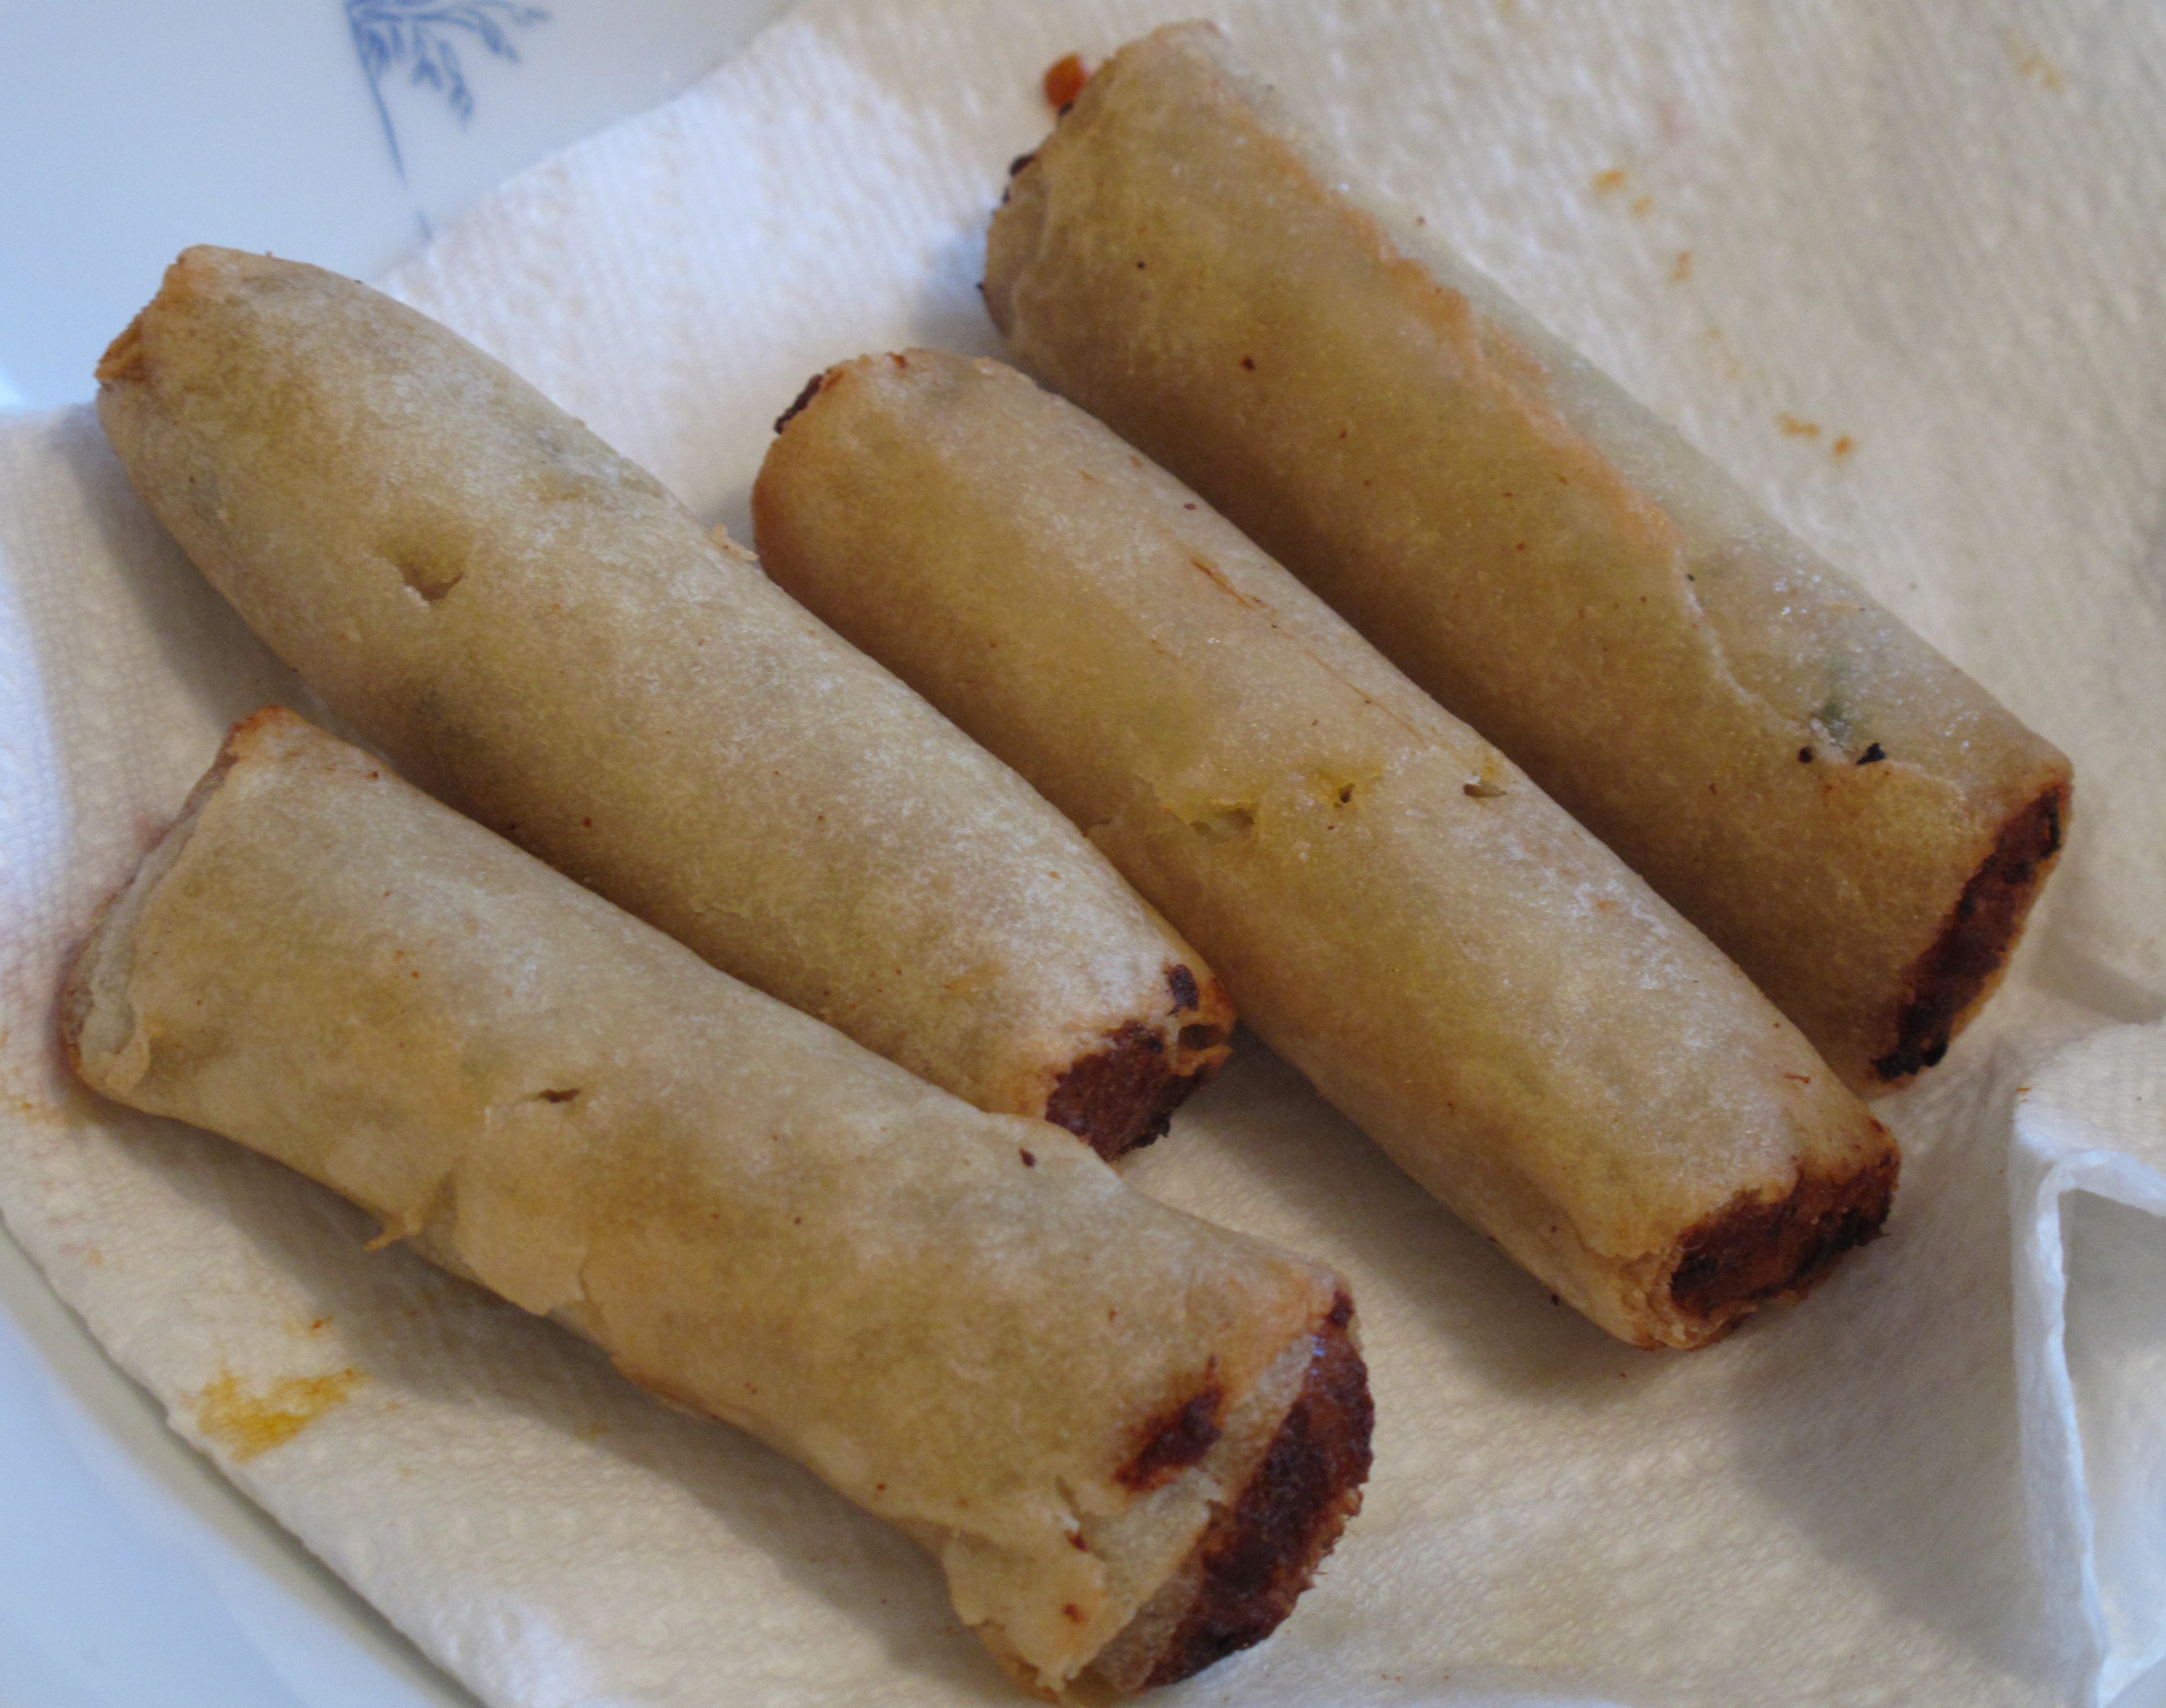 I also threw some frozen mini lemongrass chicken eggrolls in the Actifry. They didn't fare as well in the machine as they did in the oven, which makes them more crispy.